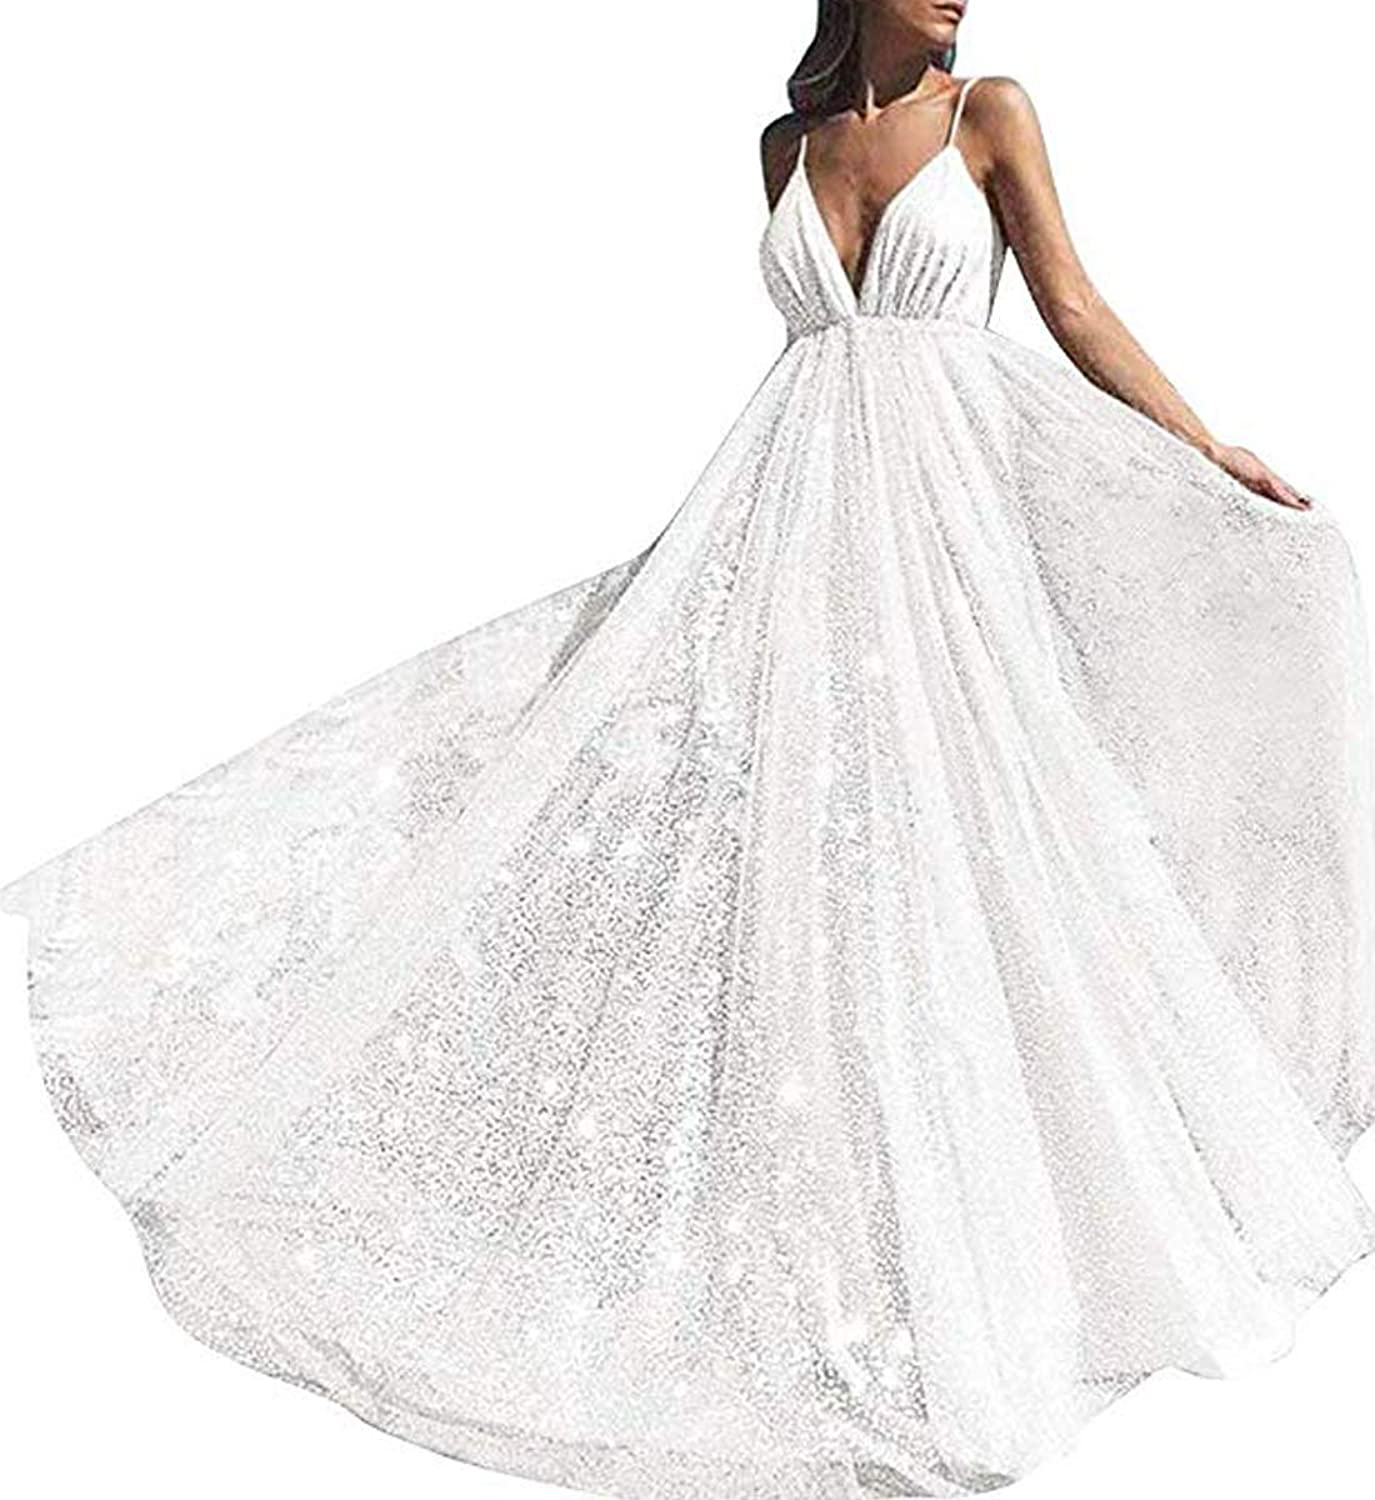 Modeldress Women's Deep VNeck Sparkling Prom Dresses Backless Tulle Evening Gown Party Gowns 2019